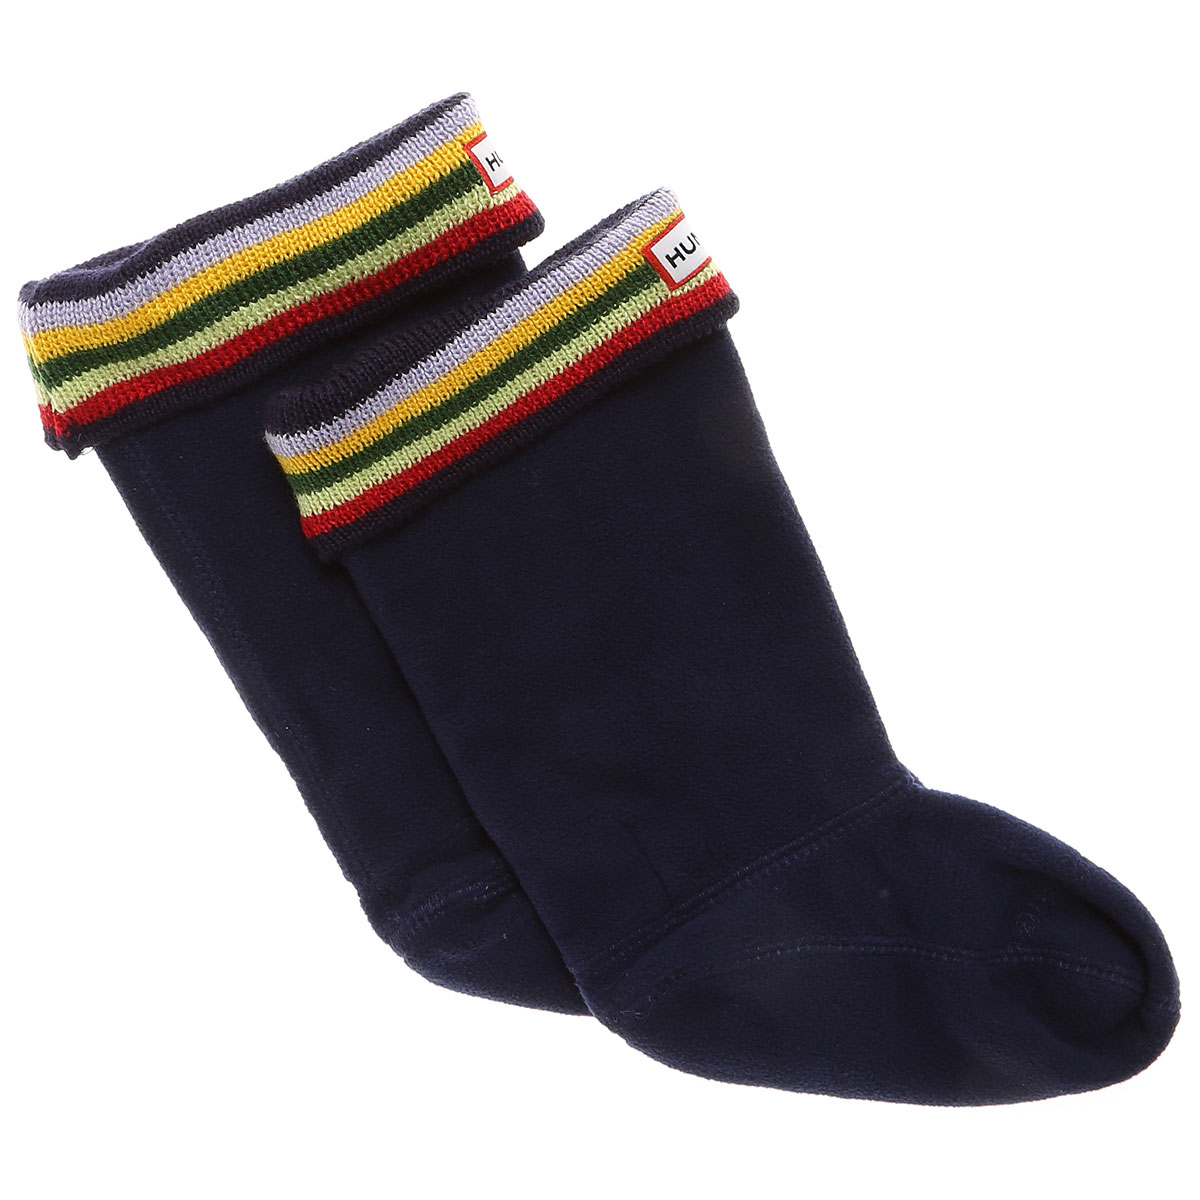 Hunter Kids Shoes for Girls On Sale in Outlet, navy, polyester, 2019, S M